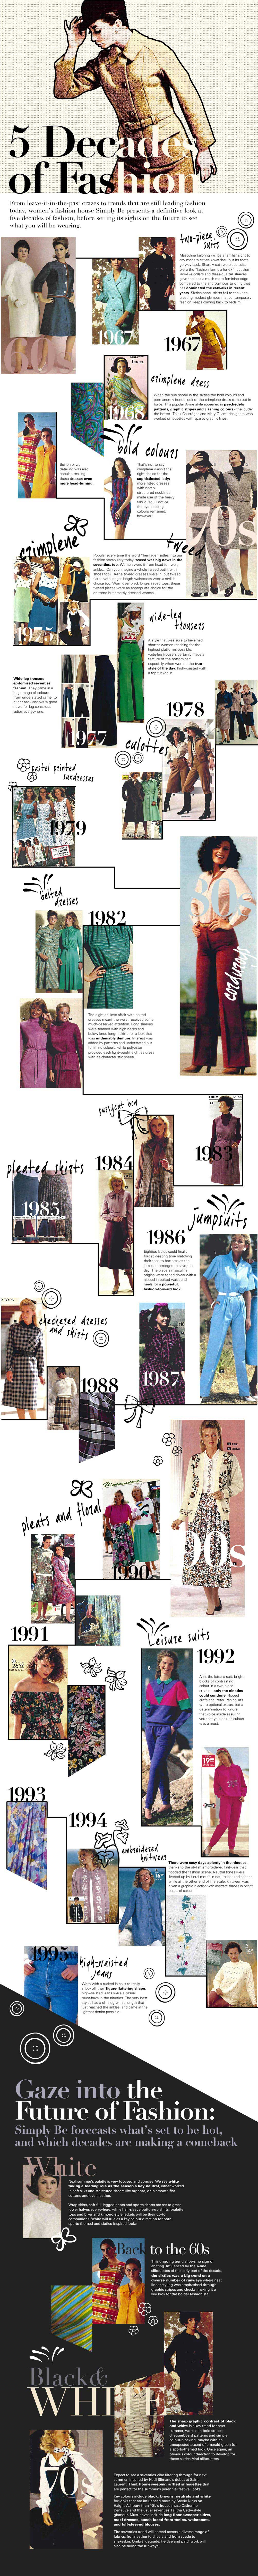 50 years of fashion-Infographic